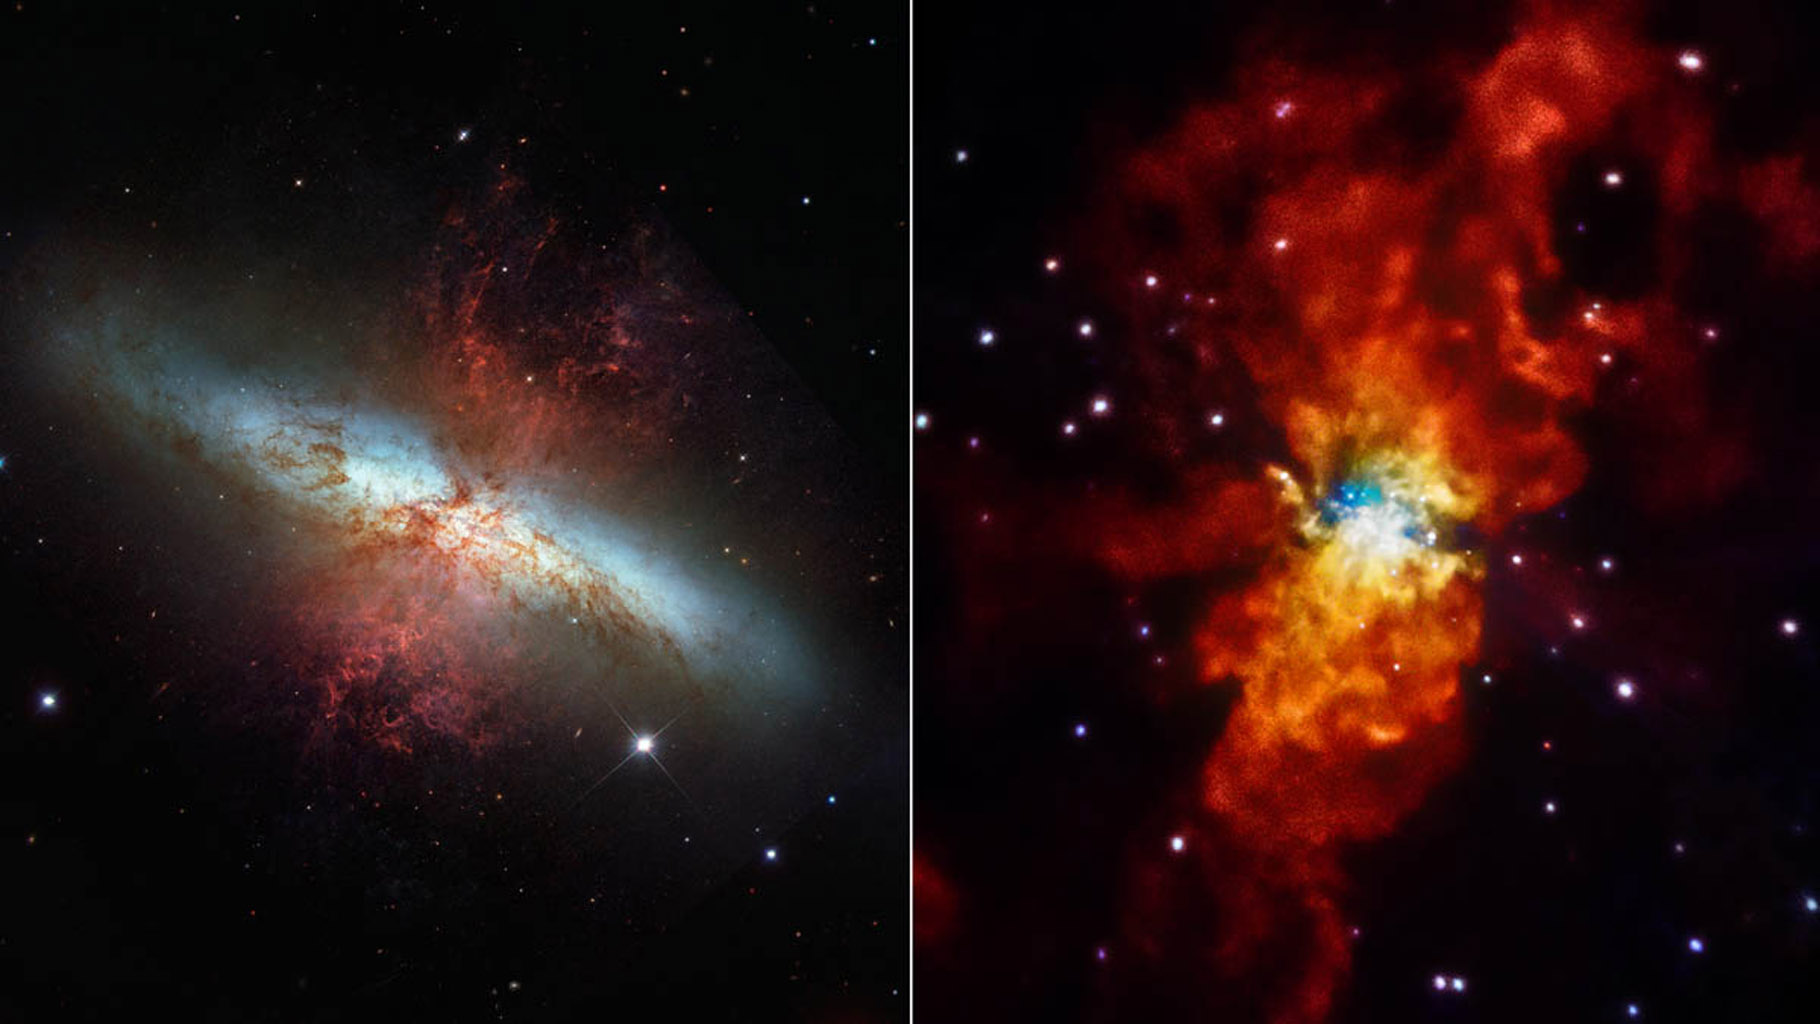 The comparison from NASA's Hubble telescope and Chandra X-ray Observatory highlights how different the universe can look when viewed in other wavelengths of light. M82 is located 12 million light-years away in the Ursa Major constellation.